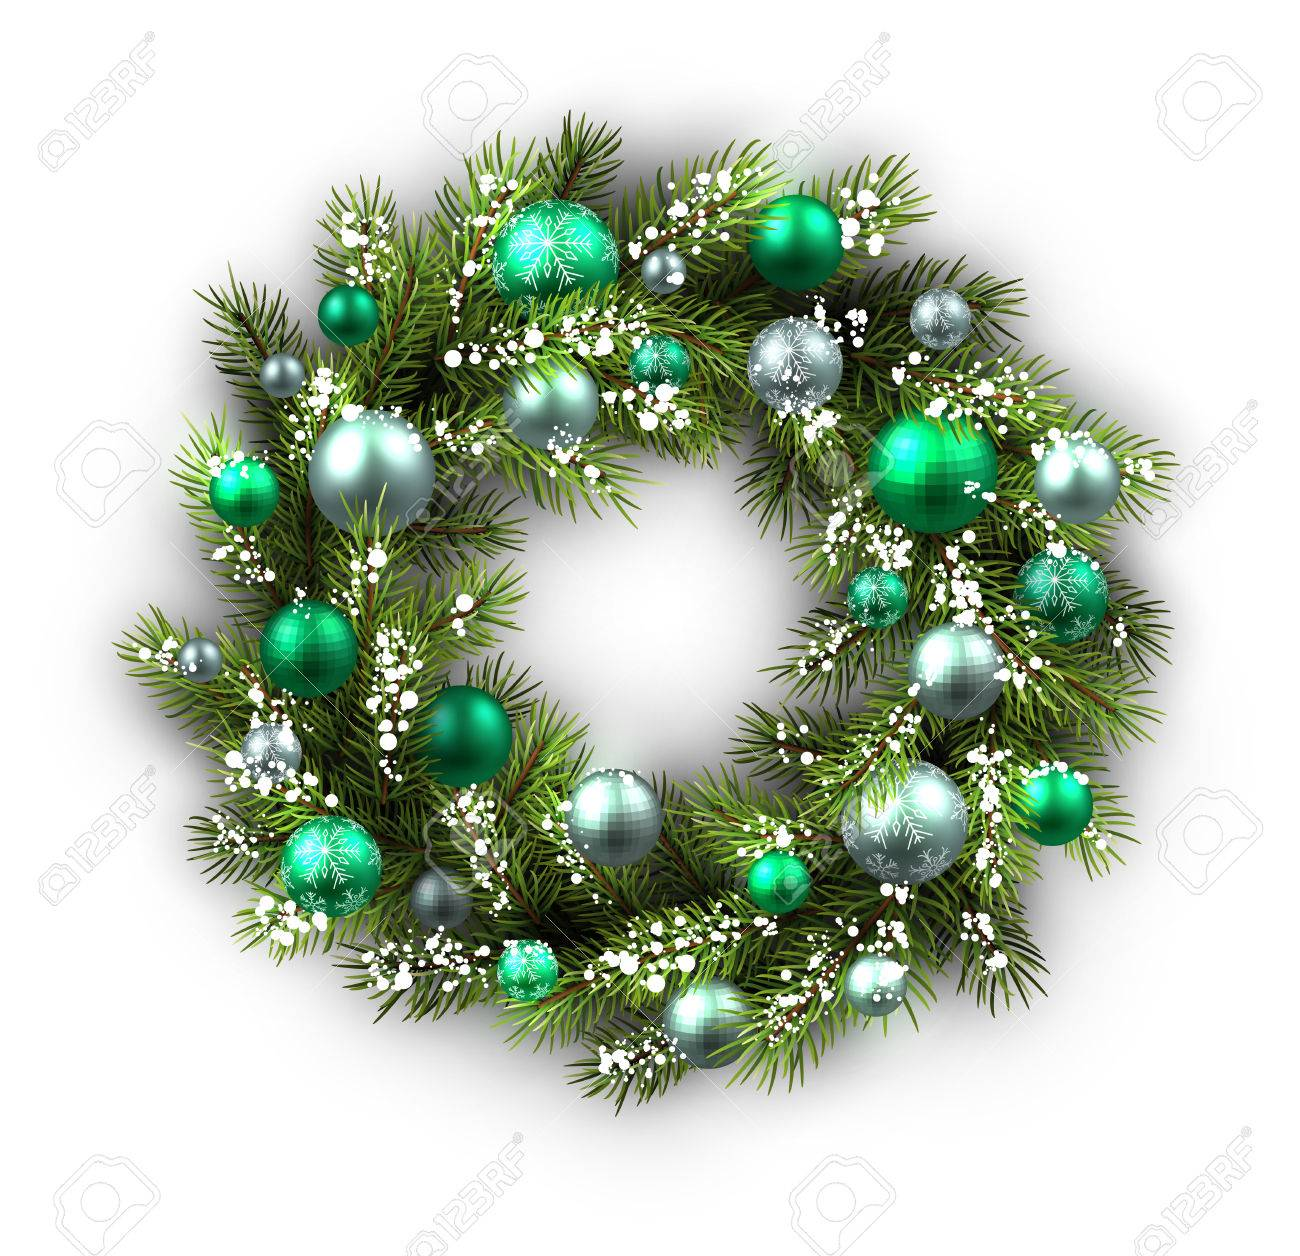 Christmas Wreath Vector.White Card With Christmas Wreath Vector Paper Illustration